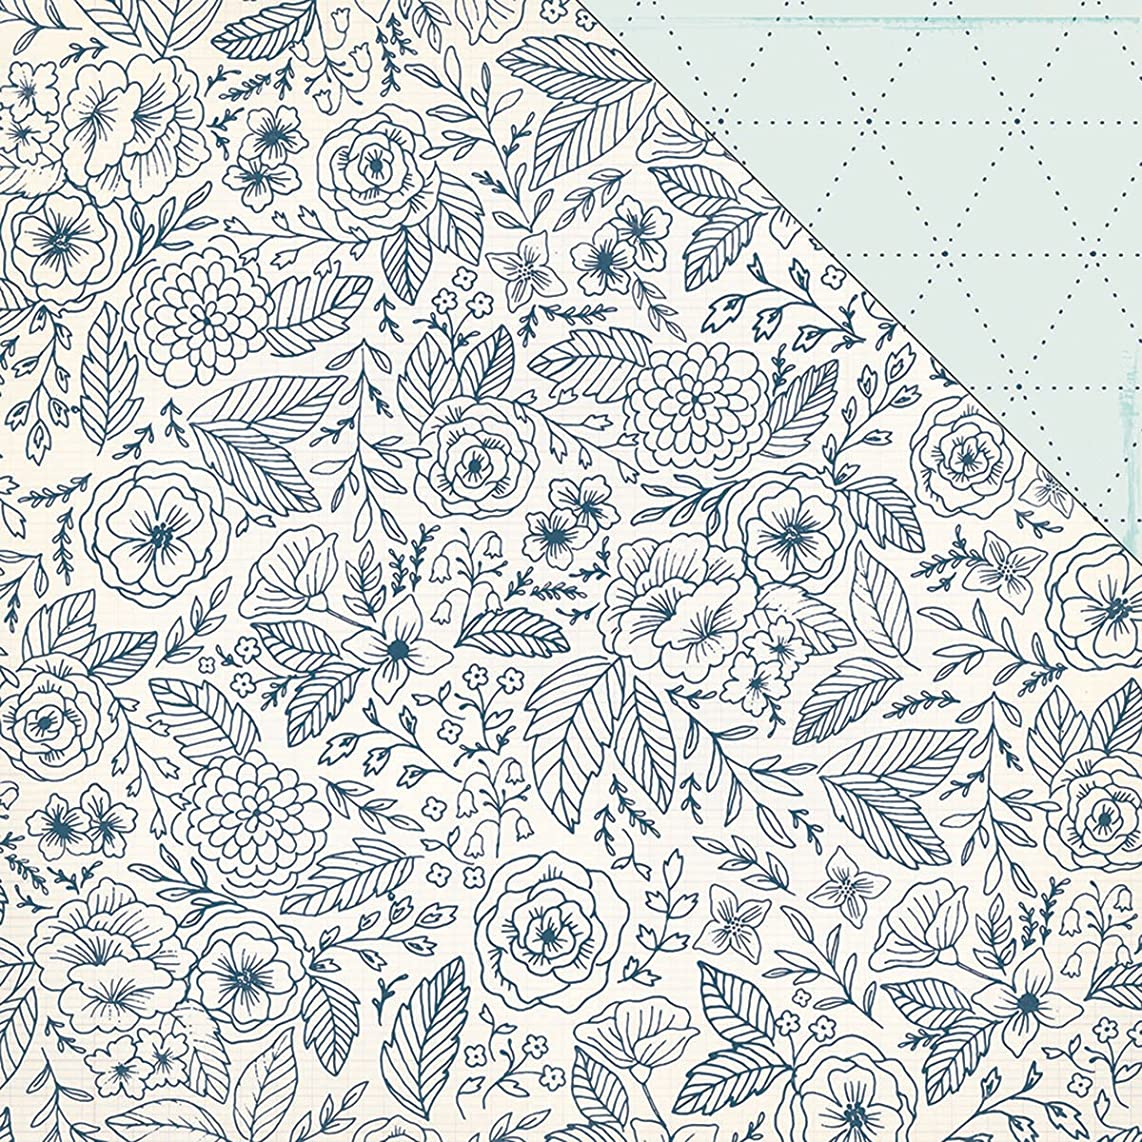 American Crafts 25 Sheets Stitching Craft Market Double-Sided Cardstock, 12 x 12